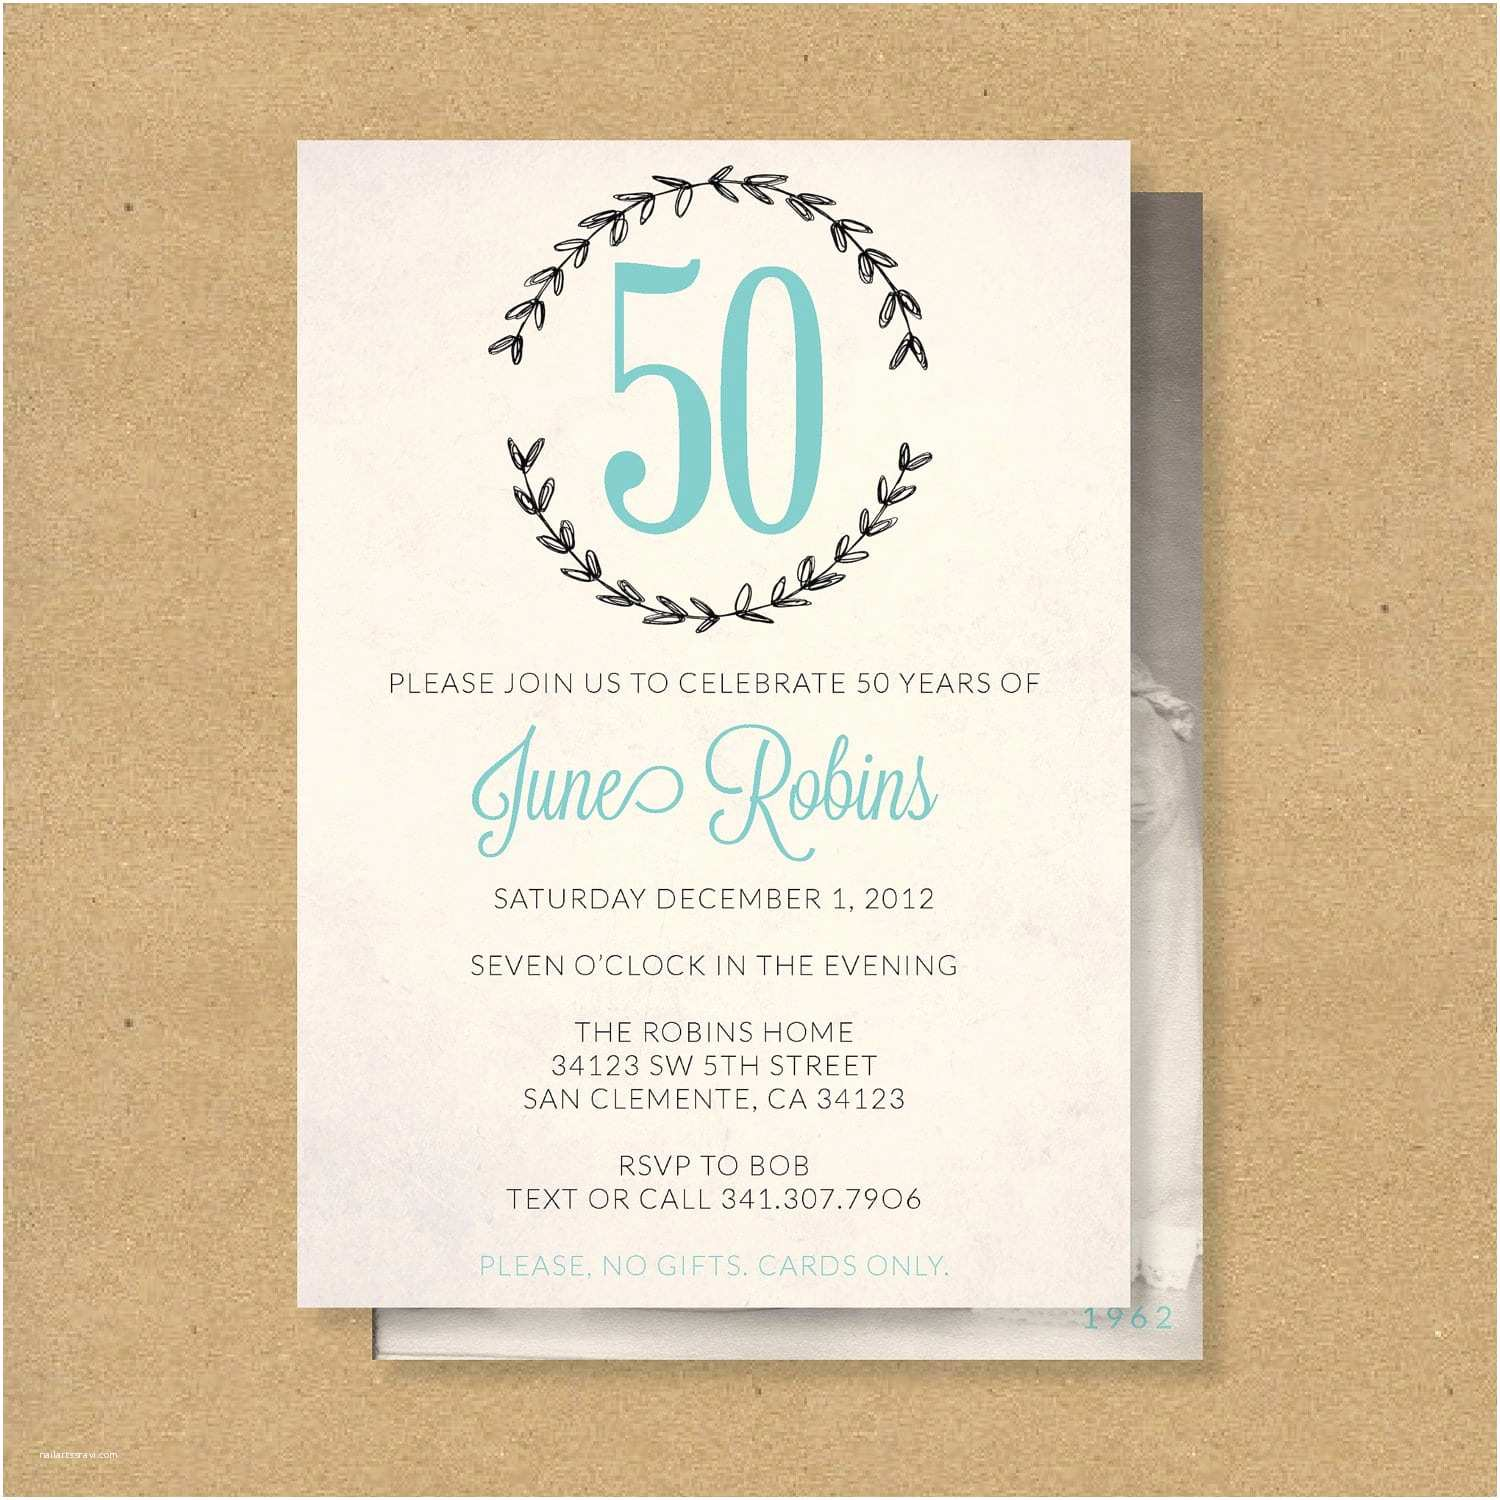 50th Birthday Invitations For Her Free Downloadable Printable Anniversary Invitation